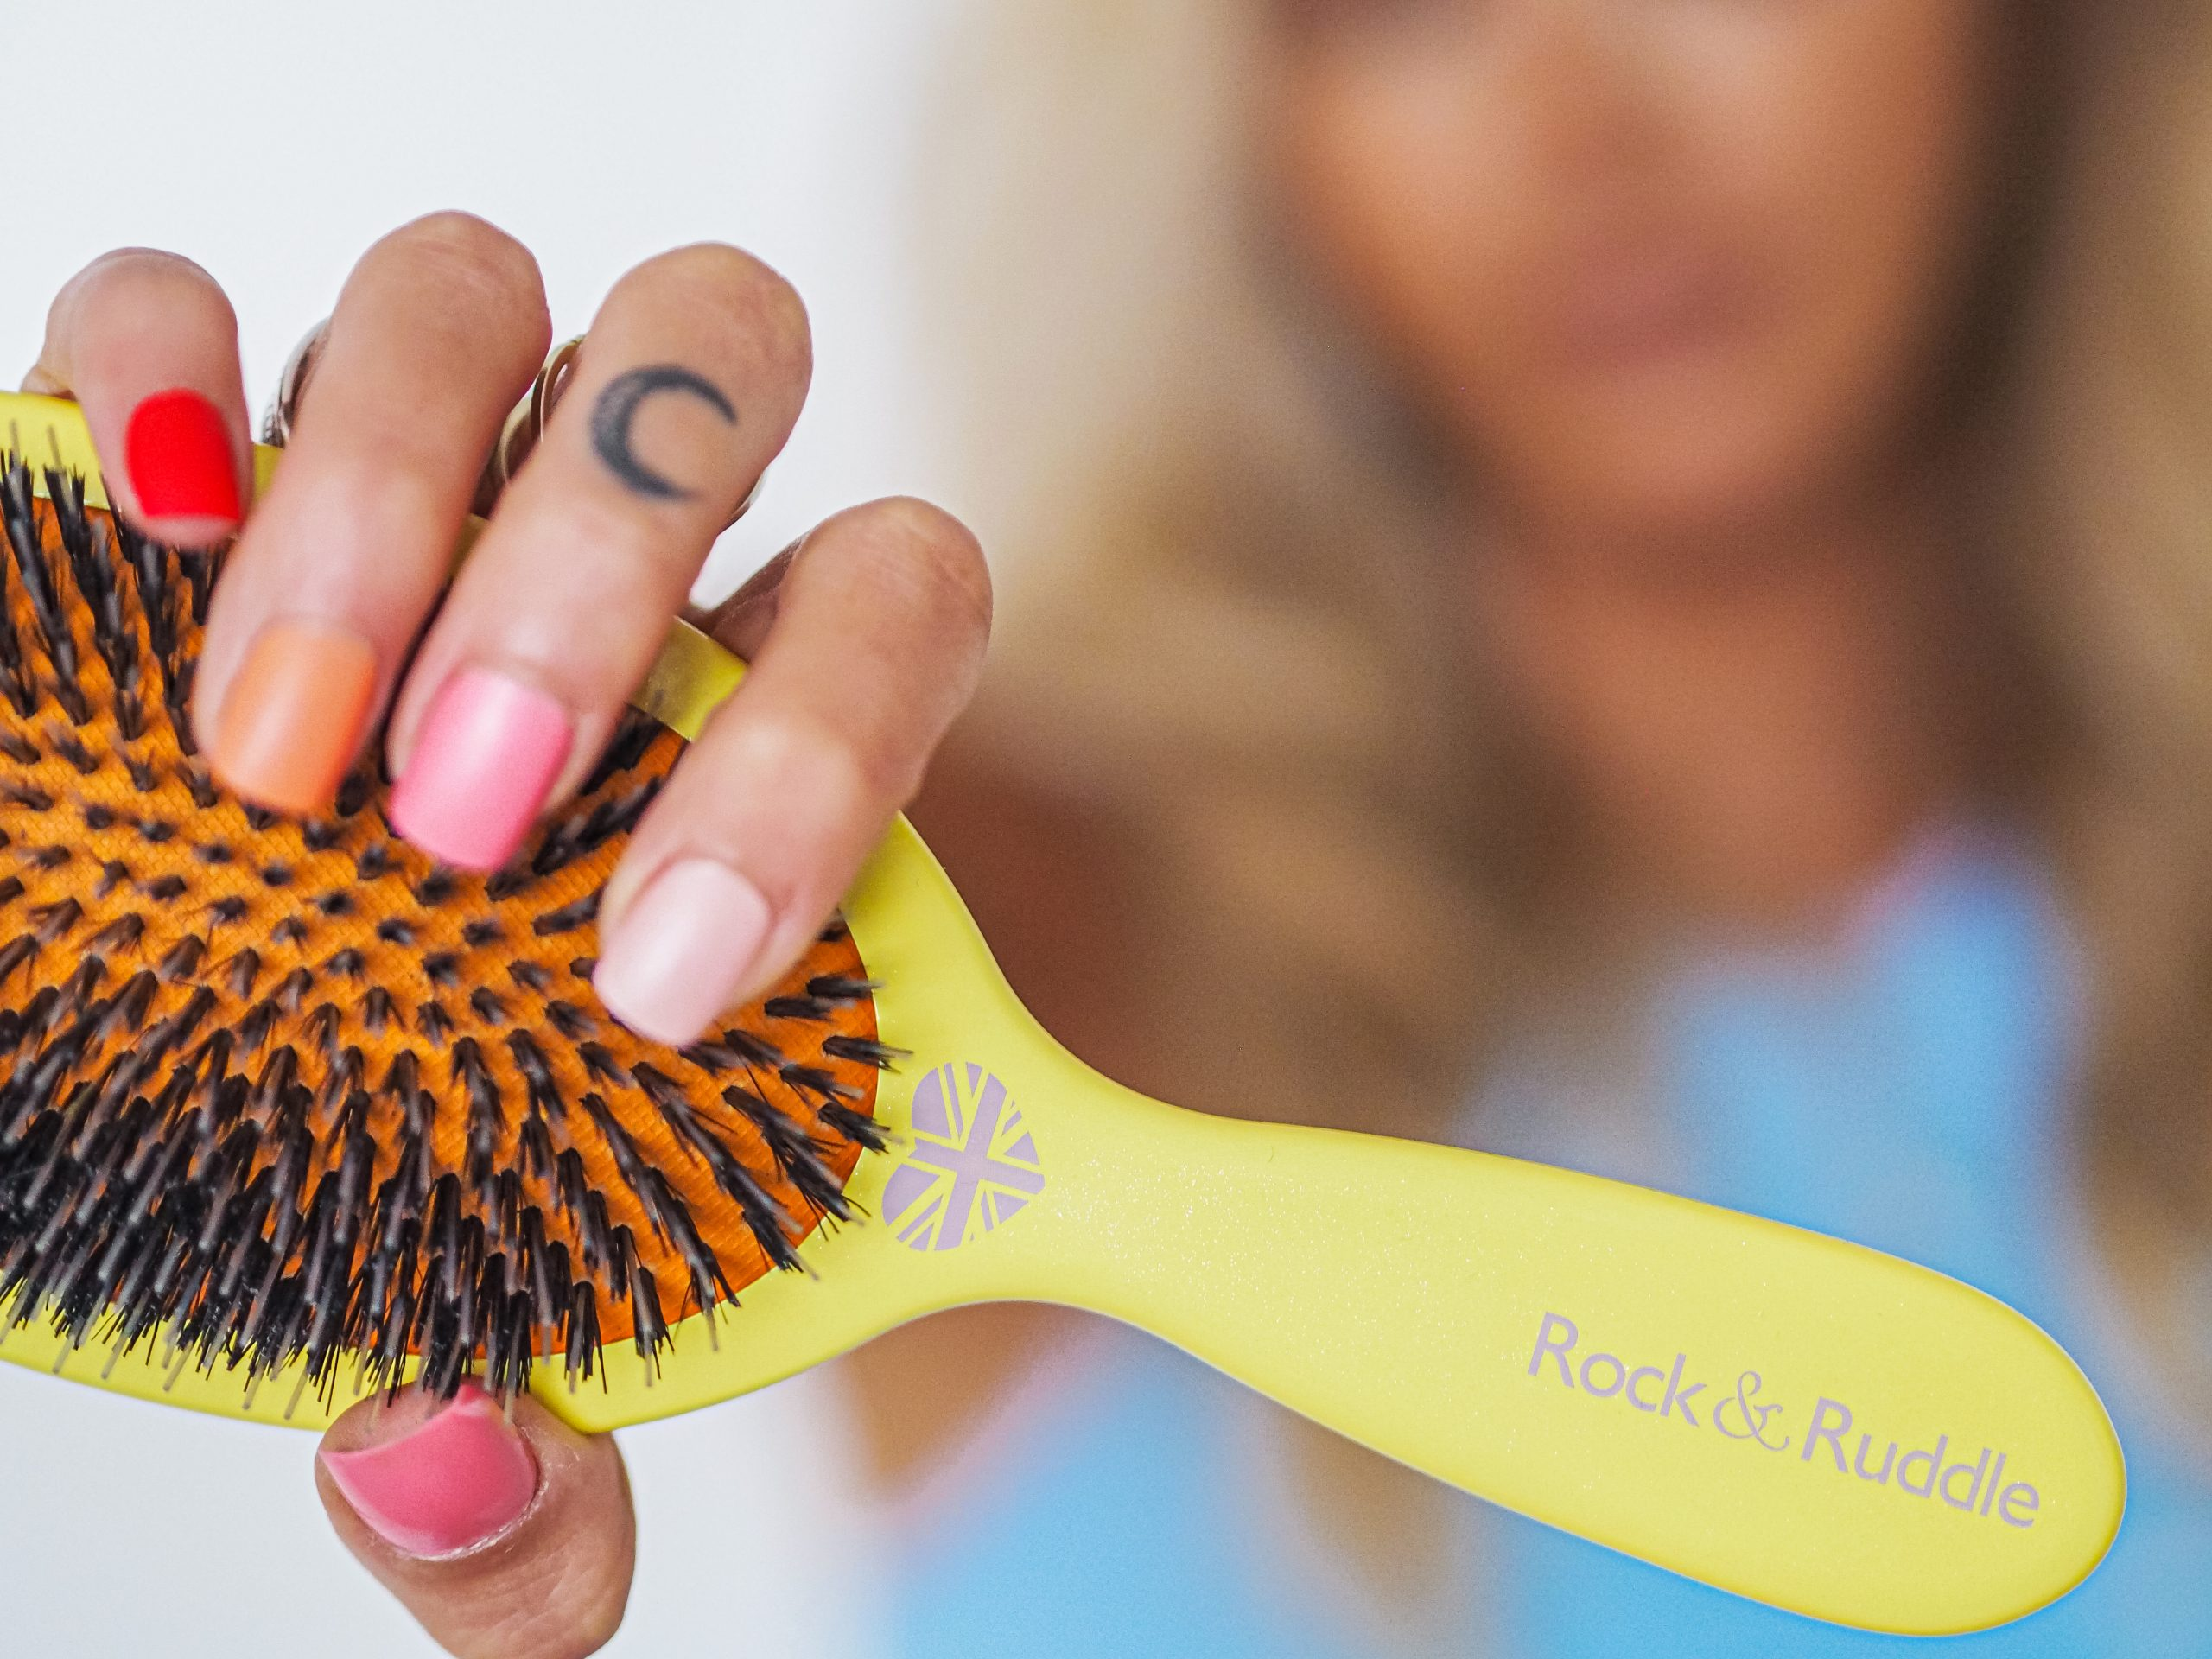 Laura Kate Lucas - Manchester Fashion, Lifestyle and Beauty Blogger | Rock & Ruddle Luxury Hairbrush